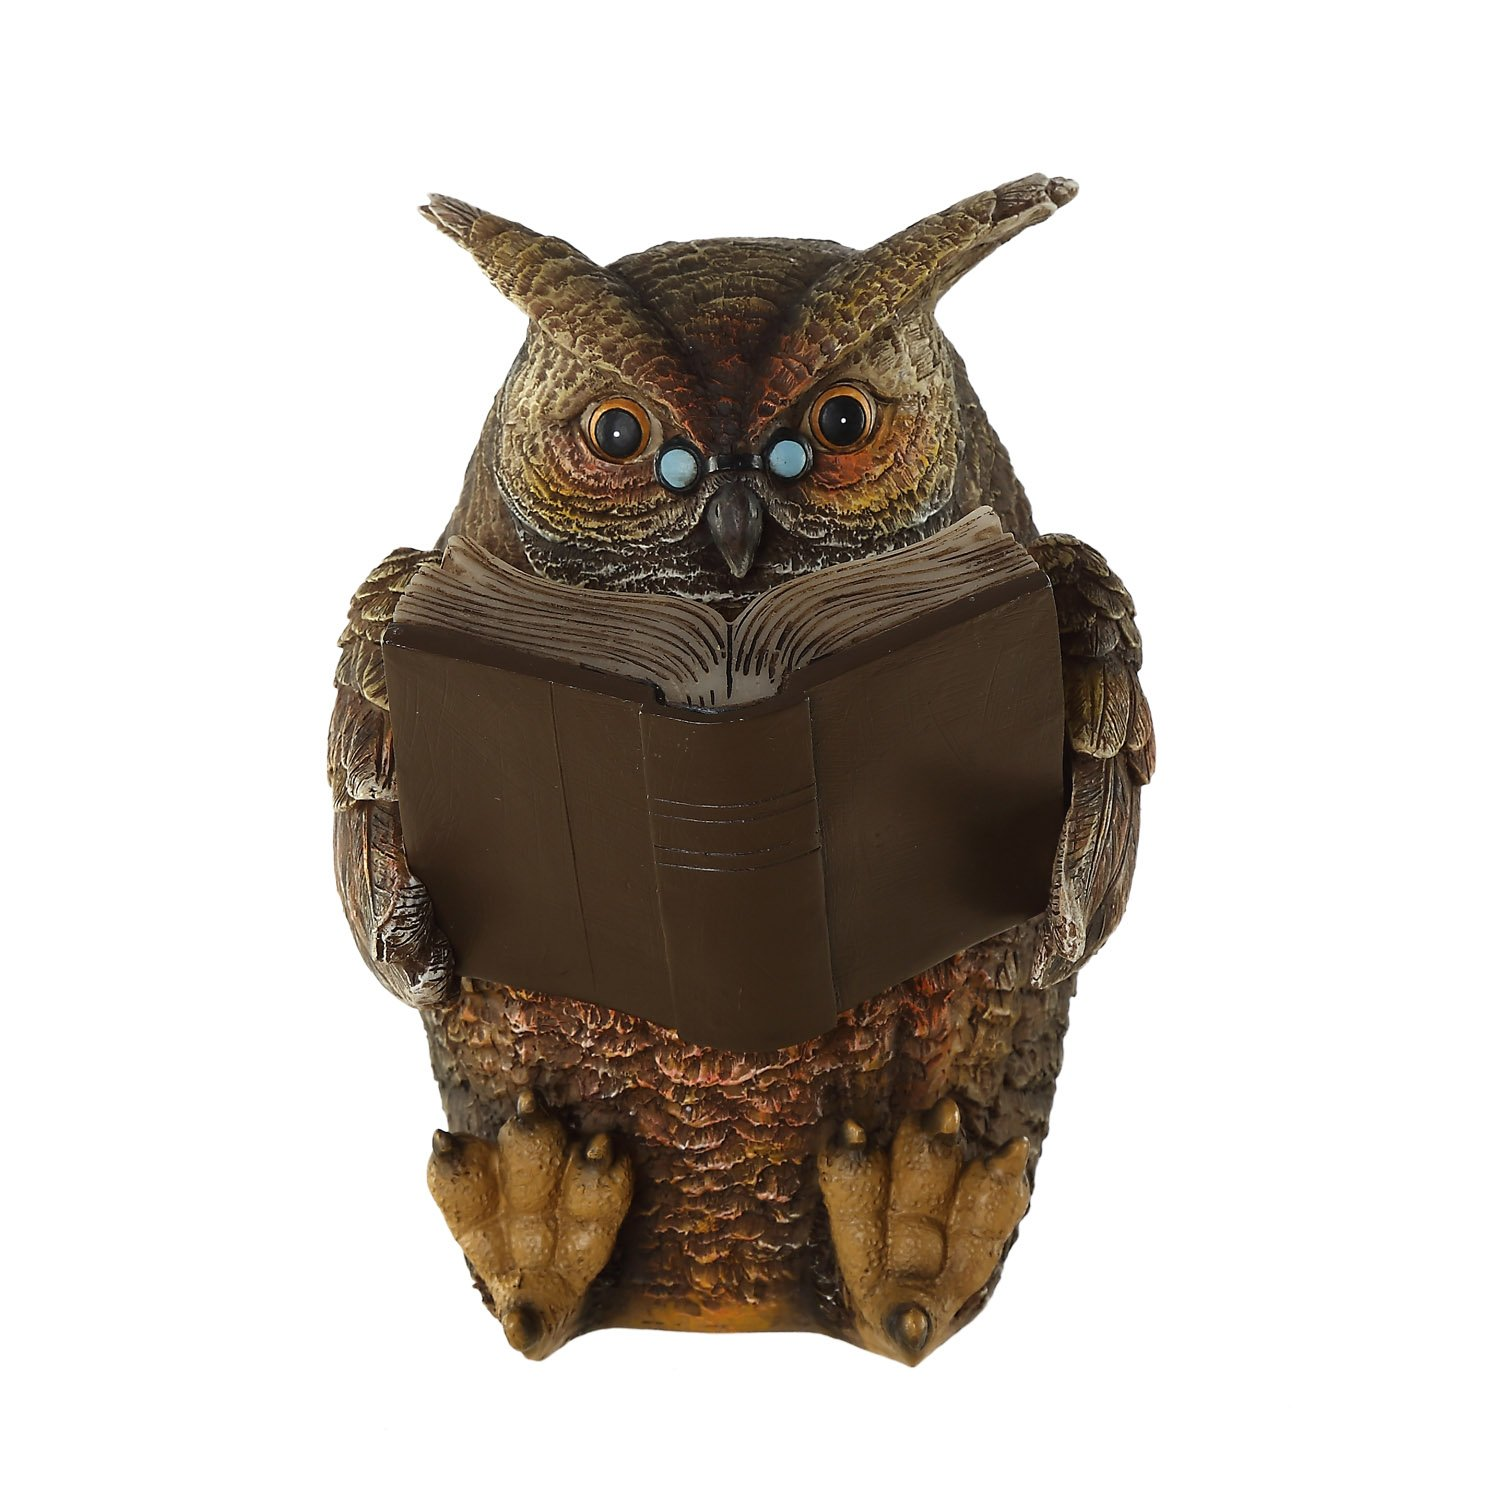 Ivy Home Schooling Garden Solar Resin Statuary Owl Statue Art Ornament Decor for Lawn Yard Patio